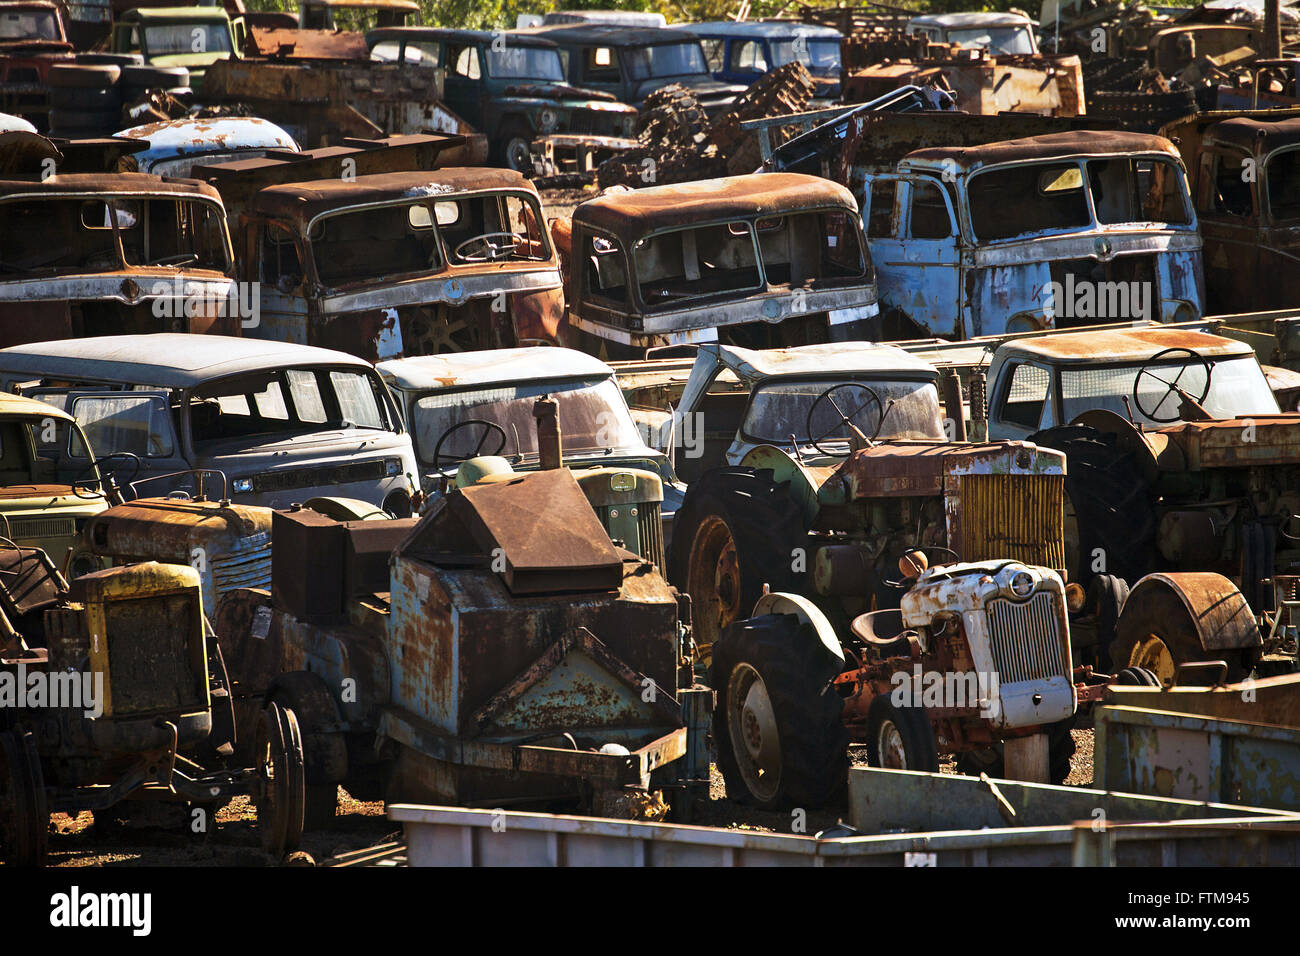 Patio with junk cars and trucks Stock Photo